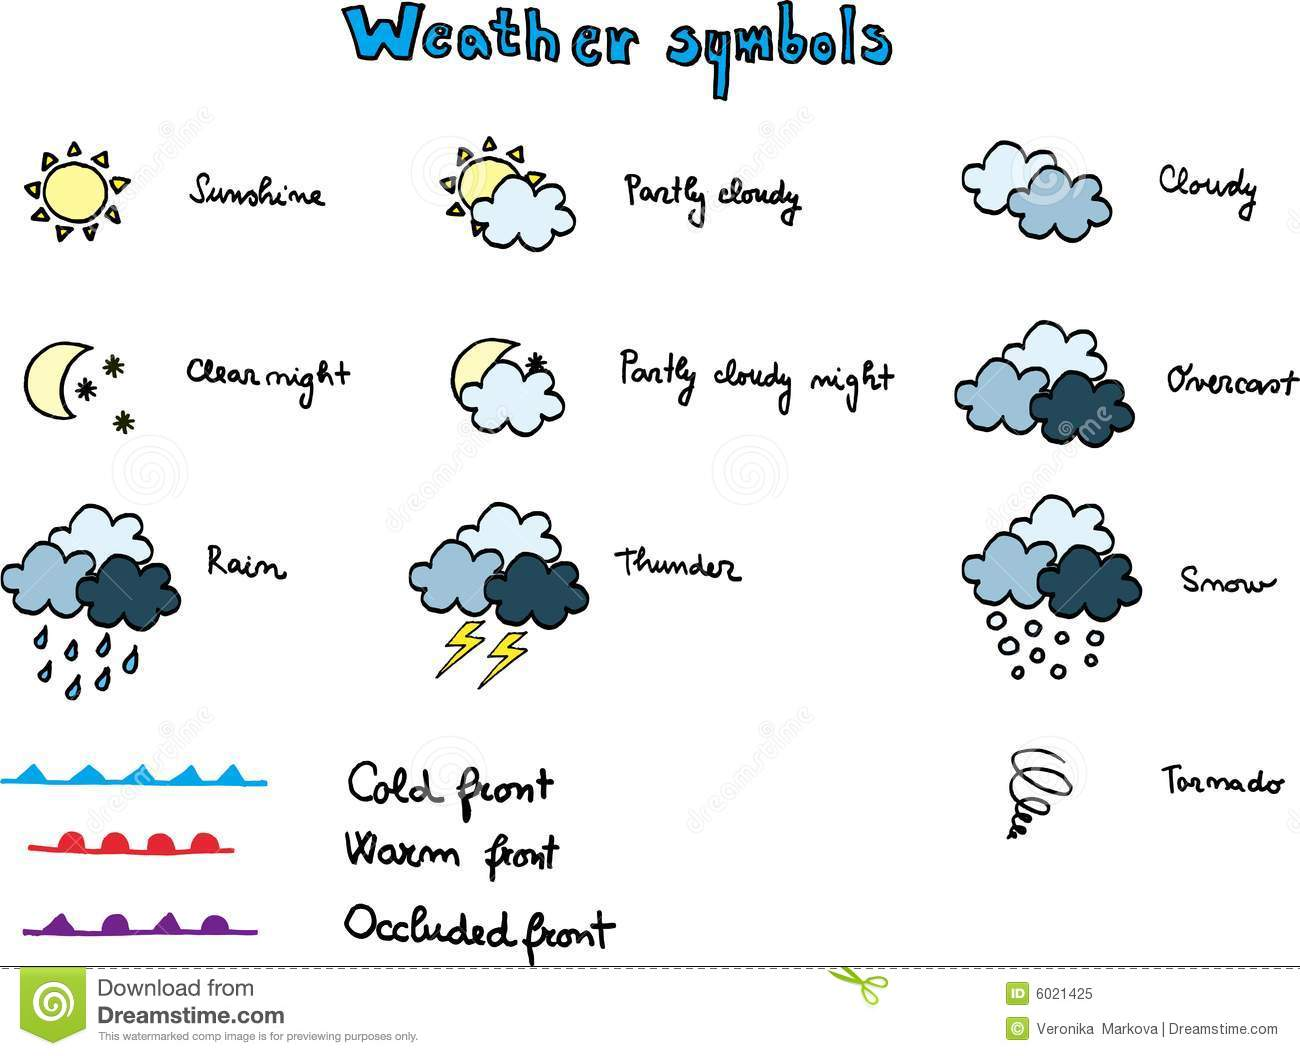 Tornado Symbol On Weather Map.Weather Symbols Stock Vector Illustration Of Snow Cold 6021425